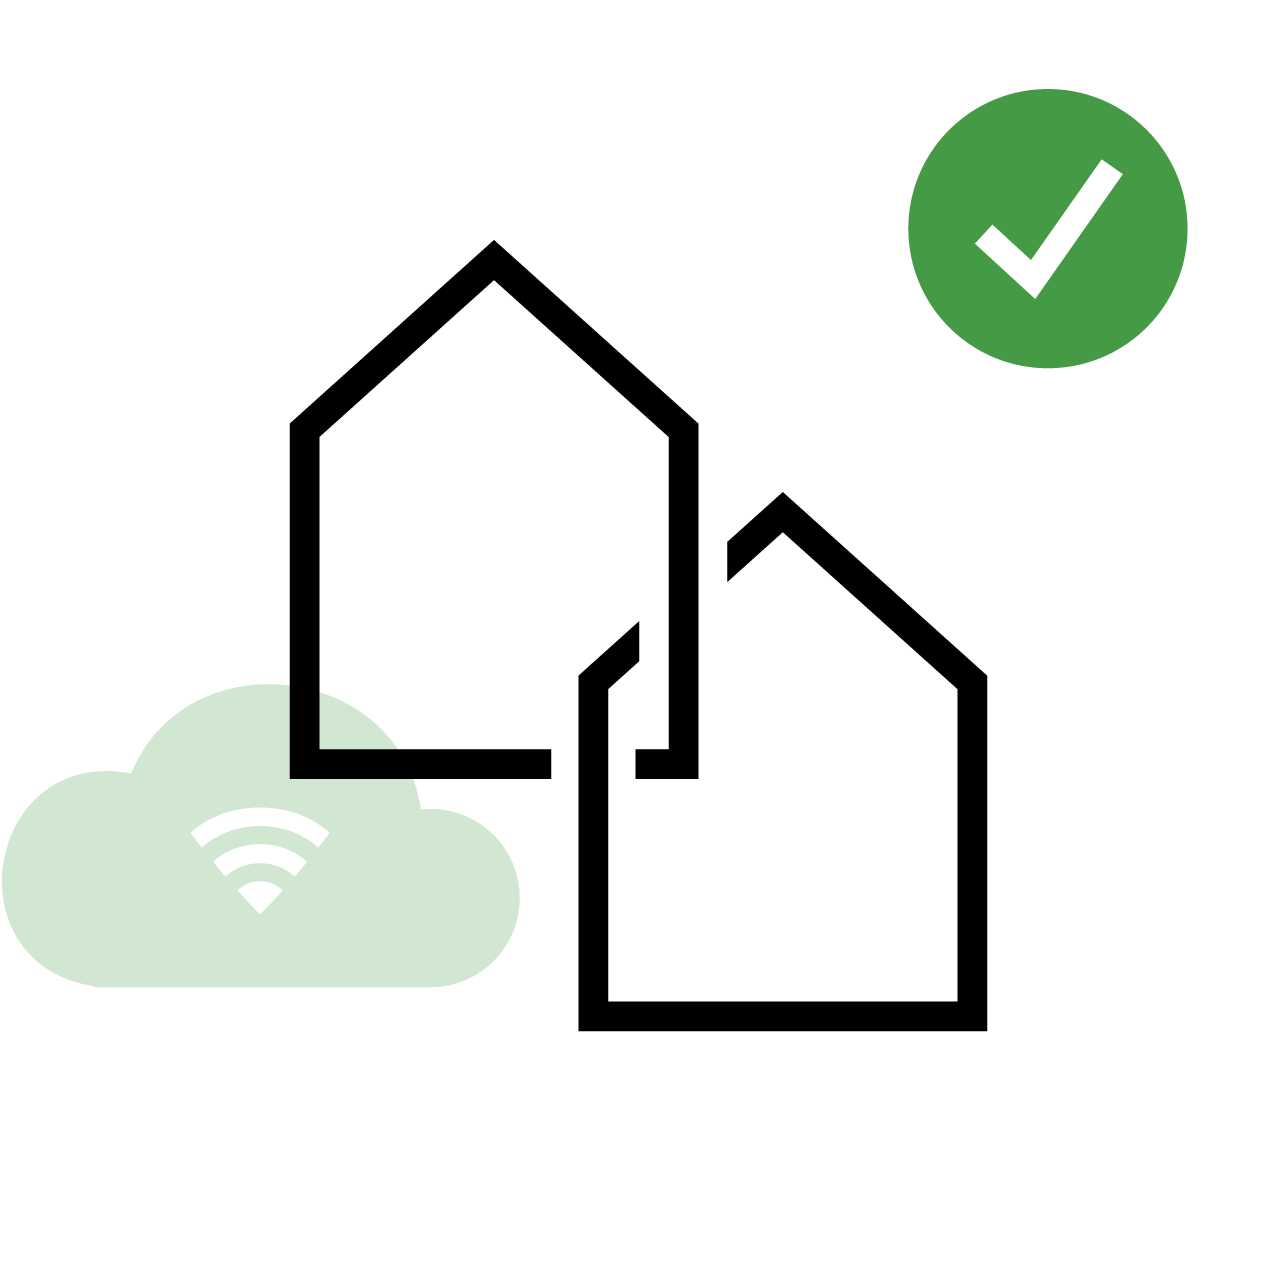 Enterprise Control Icon, the ability to control multiple properties under one platform